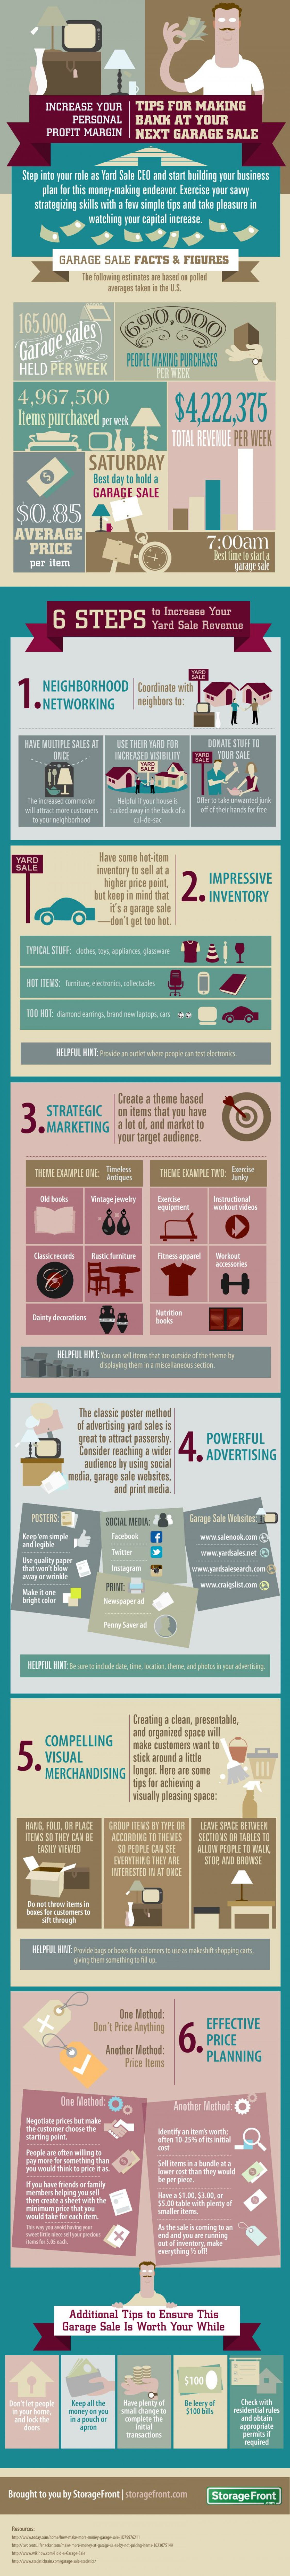 Increase Your Personal Profit Margin: Tips for Making Bank at Your Next Garage Sale Infographic